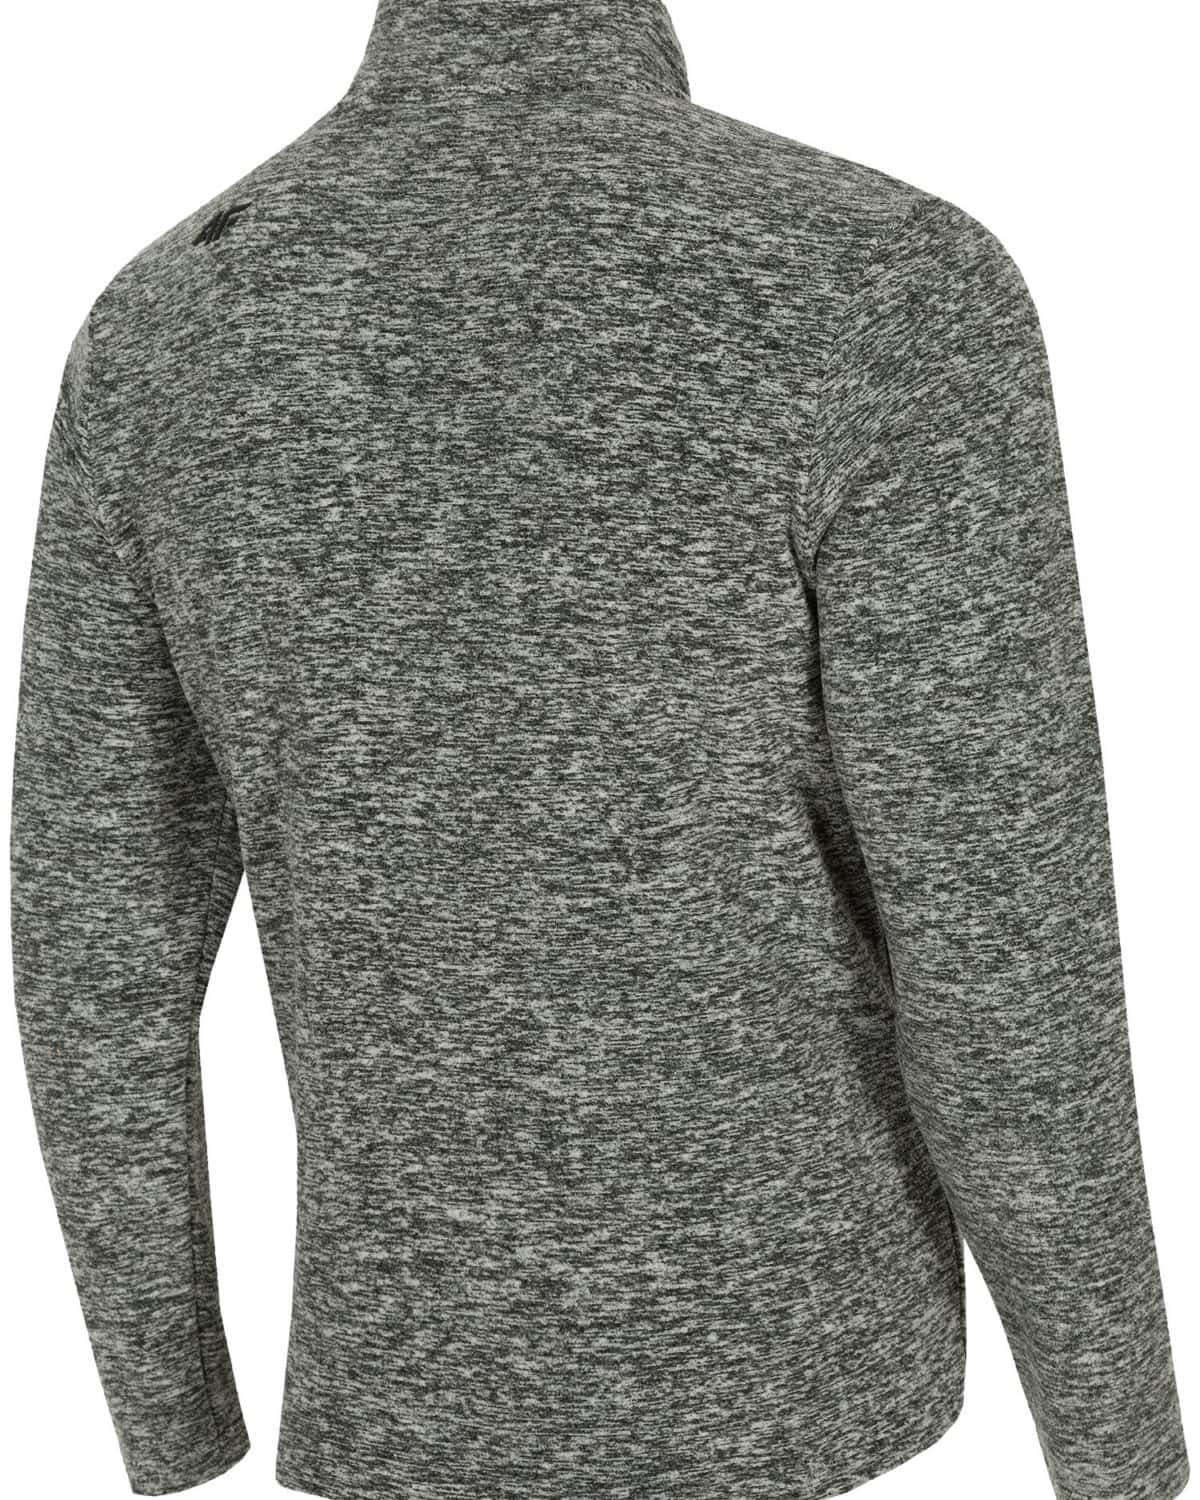 4F Fleece Men – Grey Melange D4Z18PLM300-24M d